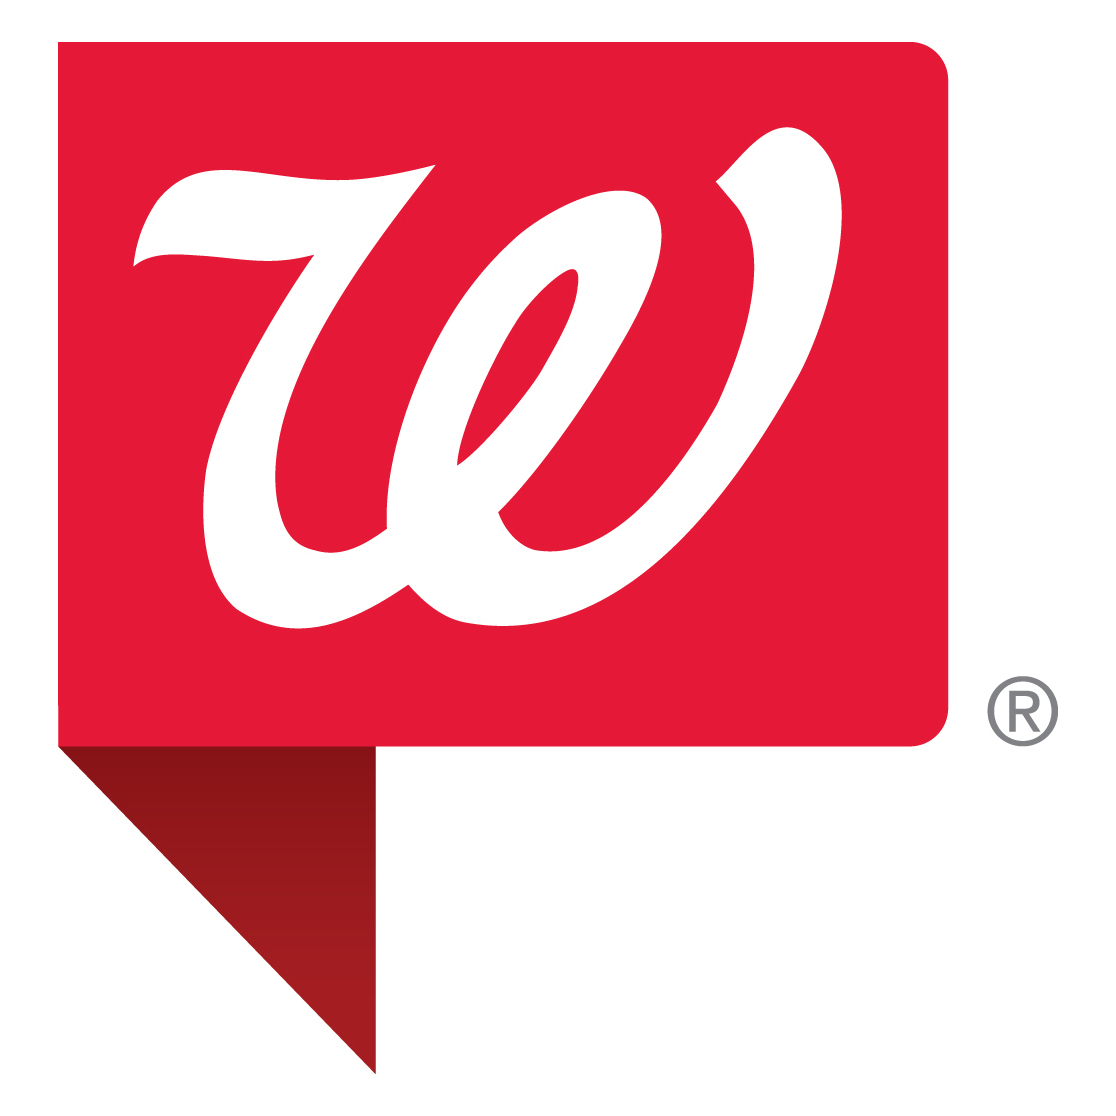 Walgreens Pharmacy at Danbury Hospital - Danbury, CT - Pharmacist